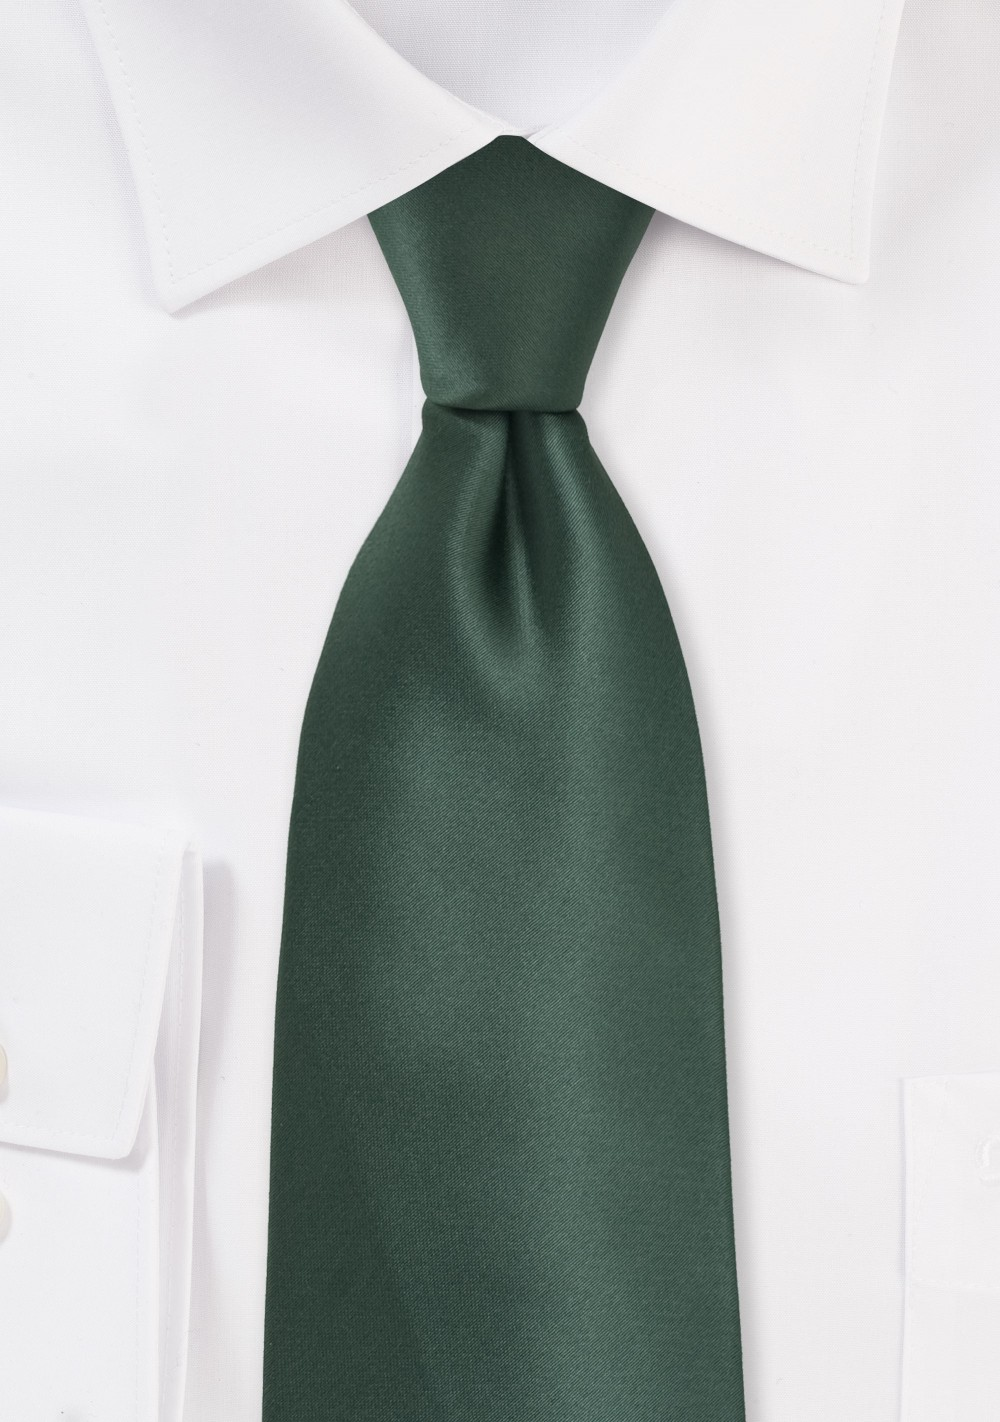 Pine Green Mens Necktie